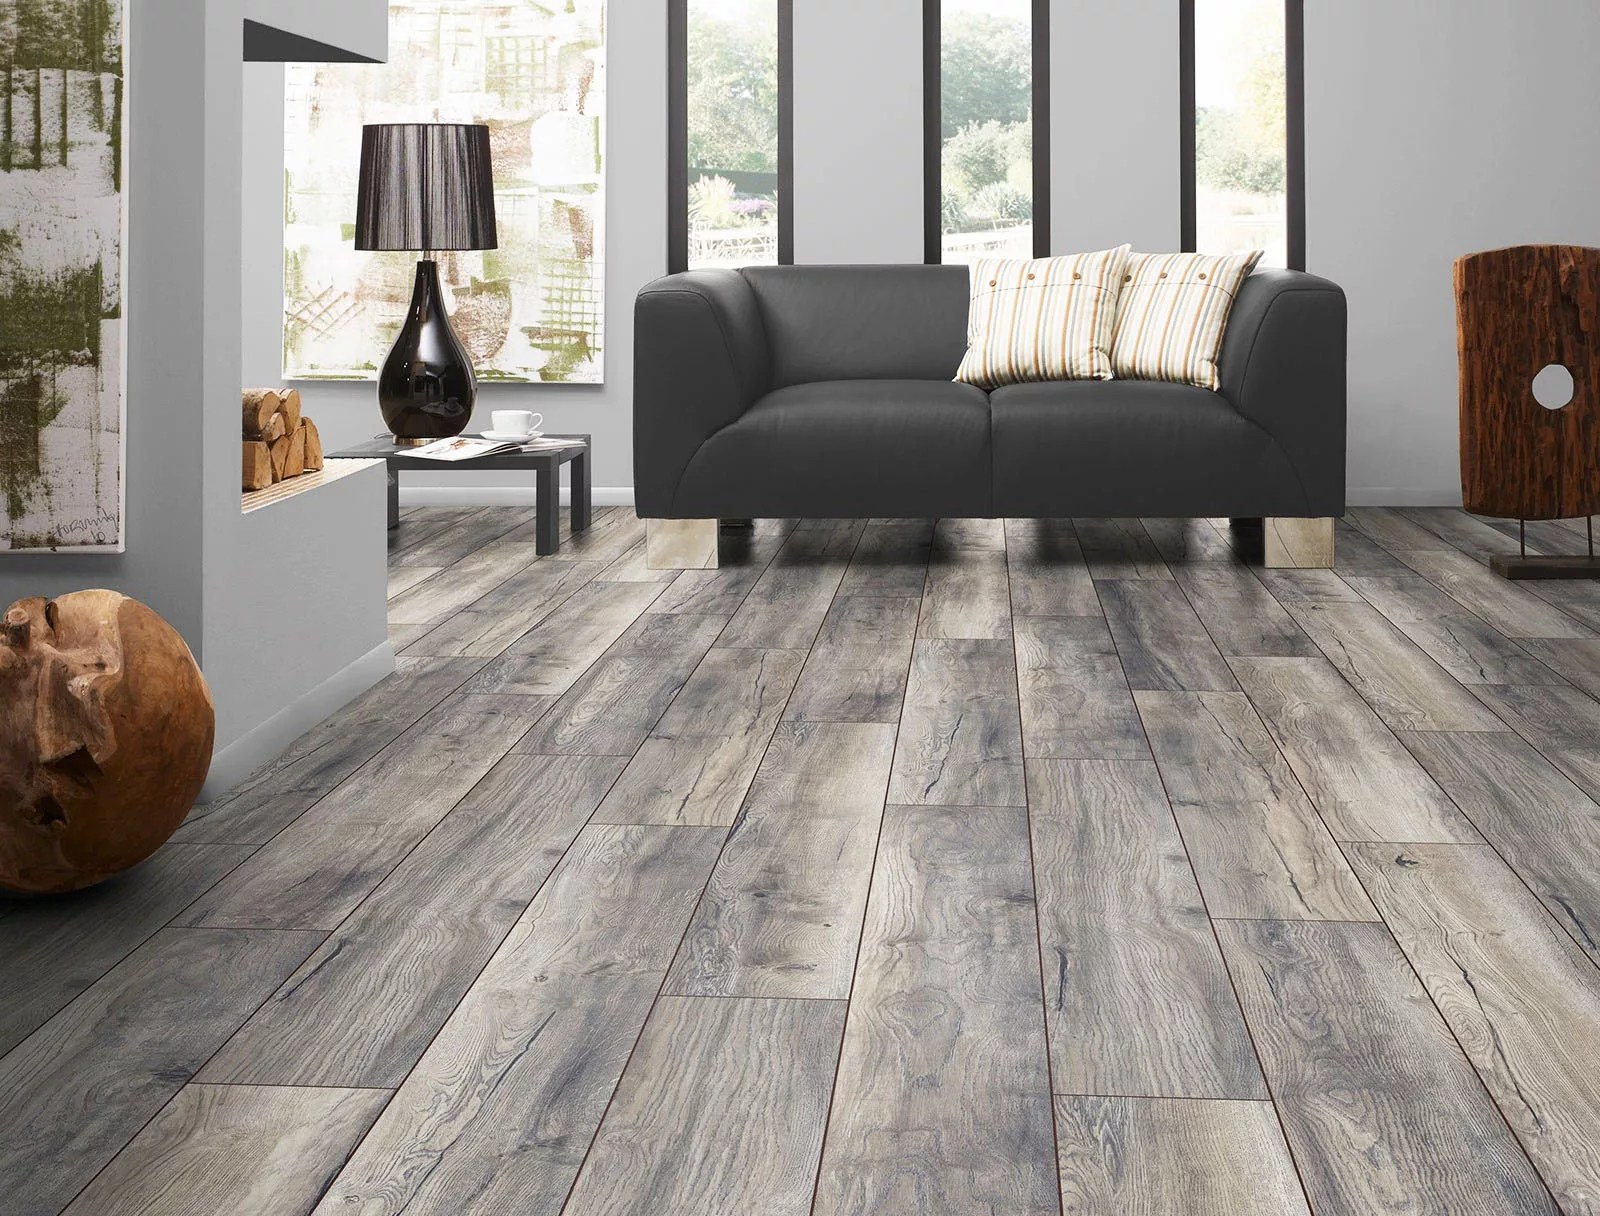 Pros and cons of basic flooring